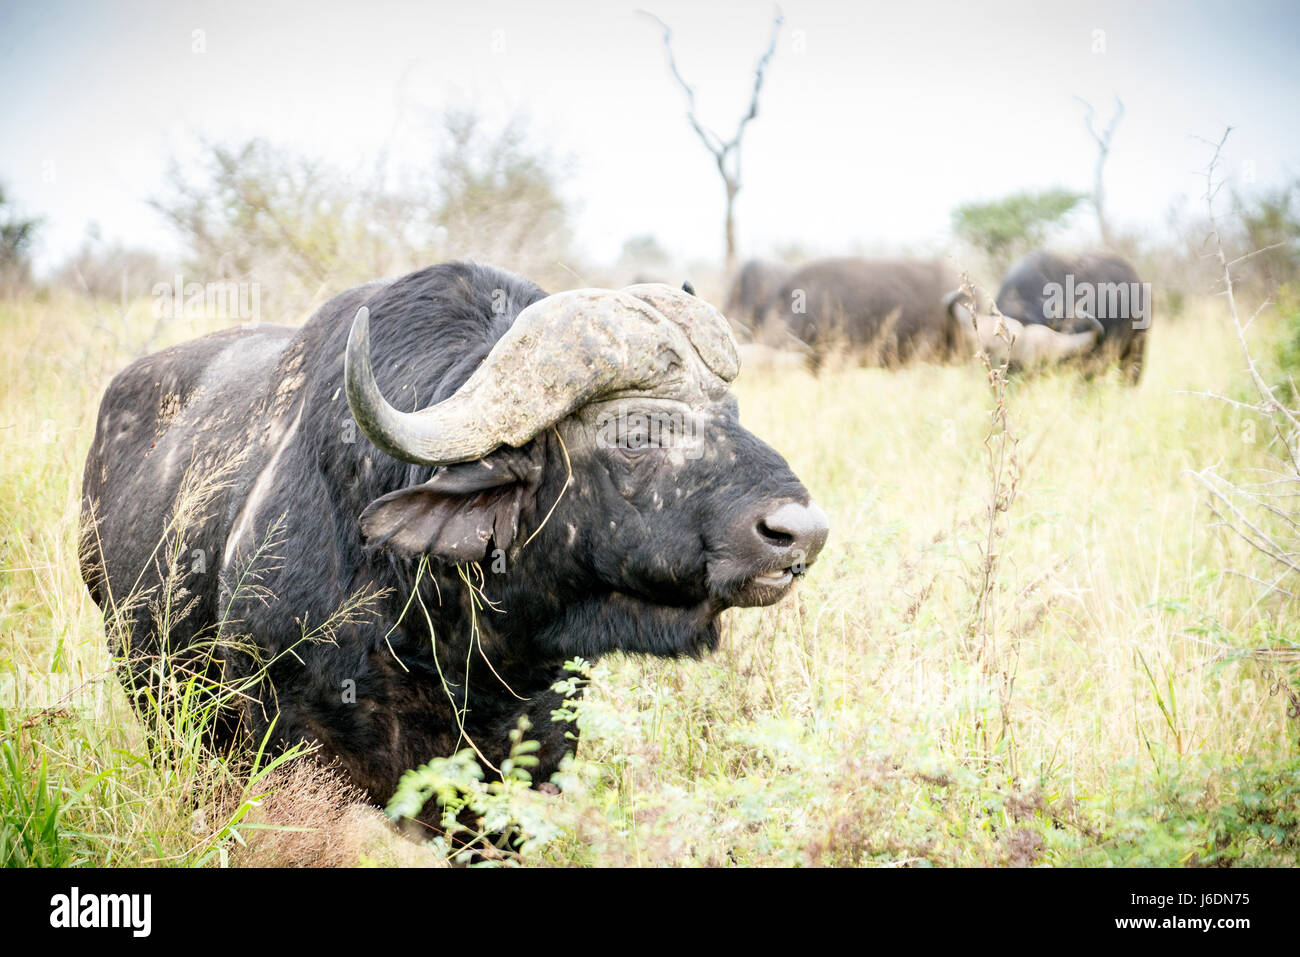 African buffalo in the grass in Kruger National Park, South Africa - Stock Image